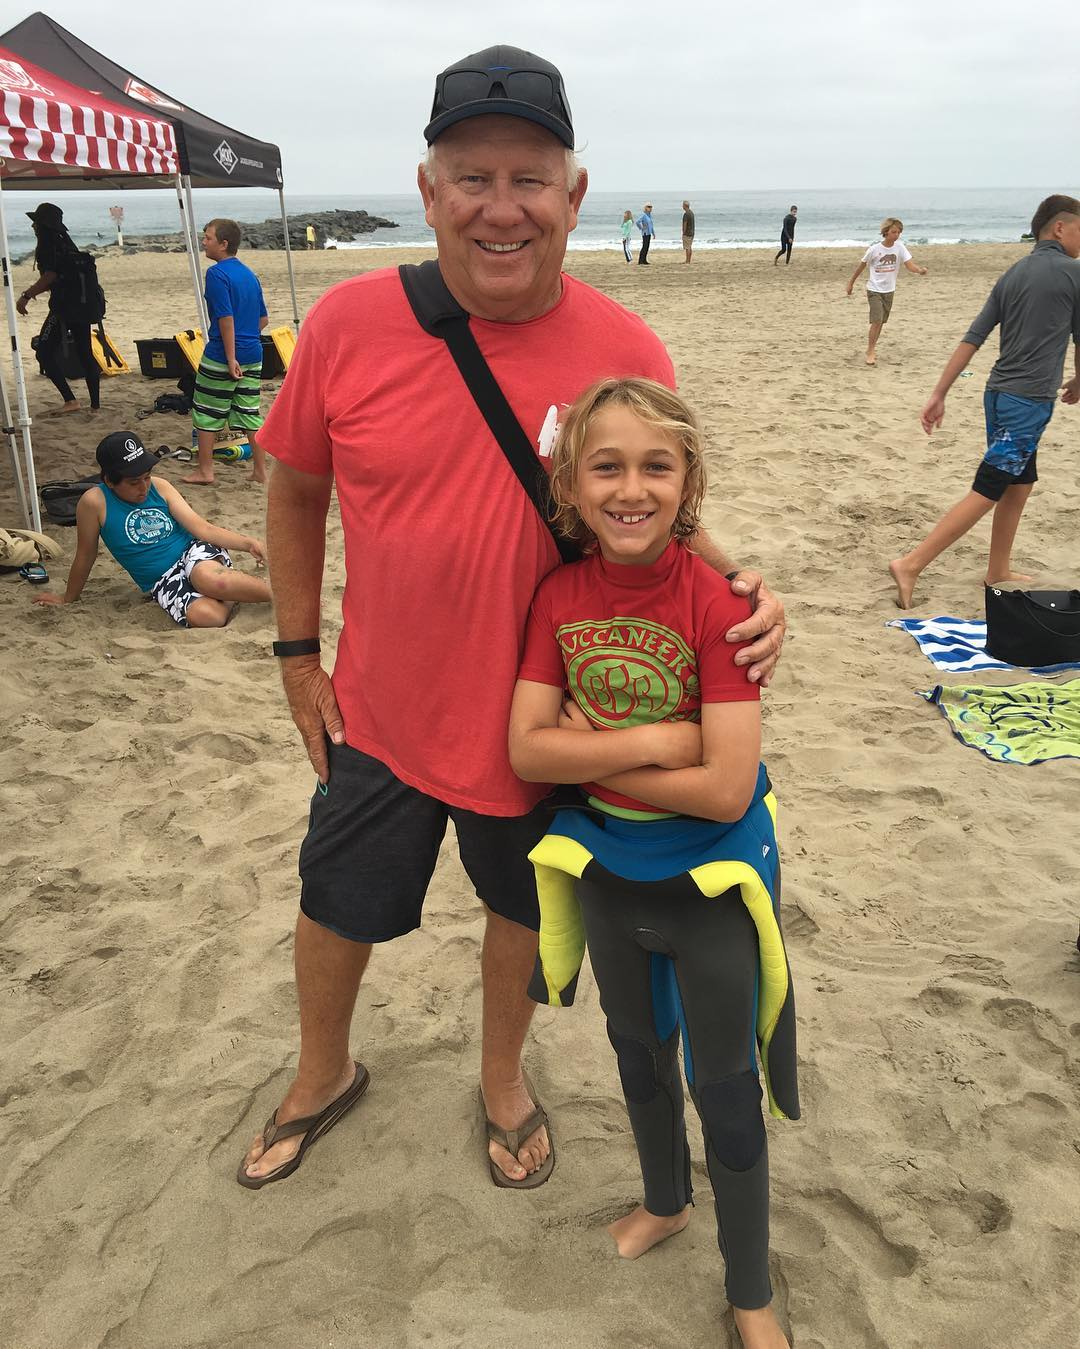 Teamrider, Benjamin and Co-Owner of Newport Surf Camp, Jerry Elder.  Great Guy and Great Surf Camp!  #bbr #bbrsurf #bbrsurfwear #buccaneerboardriders #teamrider #benjaminstone #newportsurfcamp #28thstreet #newportbeach